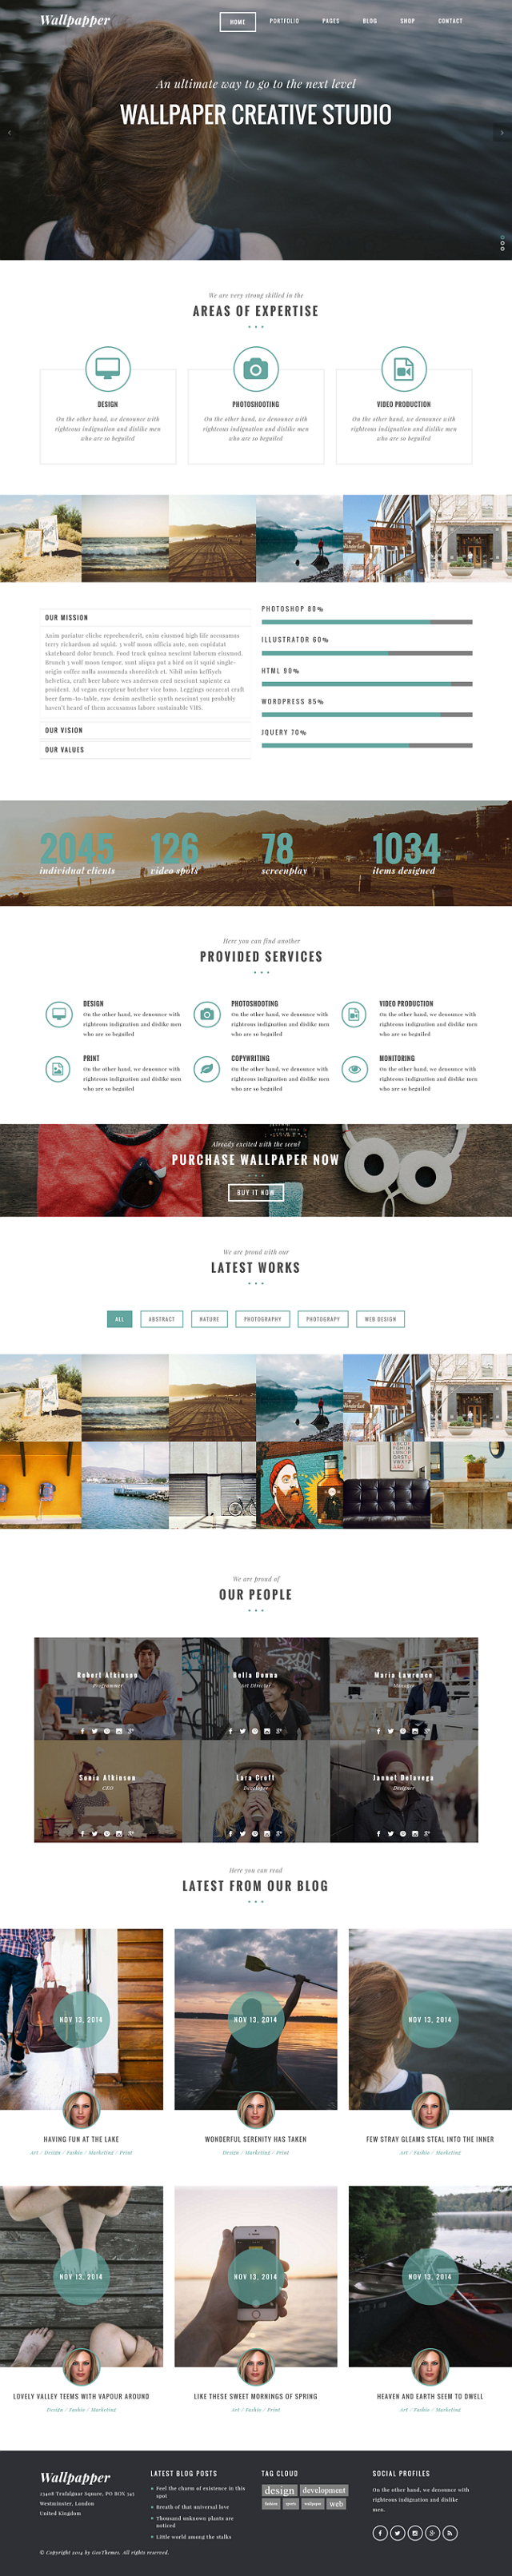 Wallpaper is a modern WordPress theme for your agency, studio or design company. You can customi ...